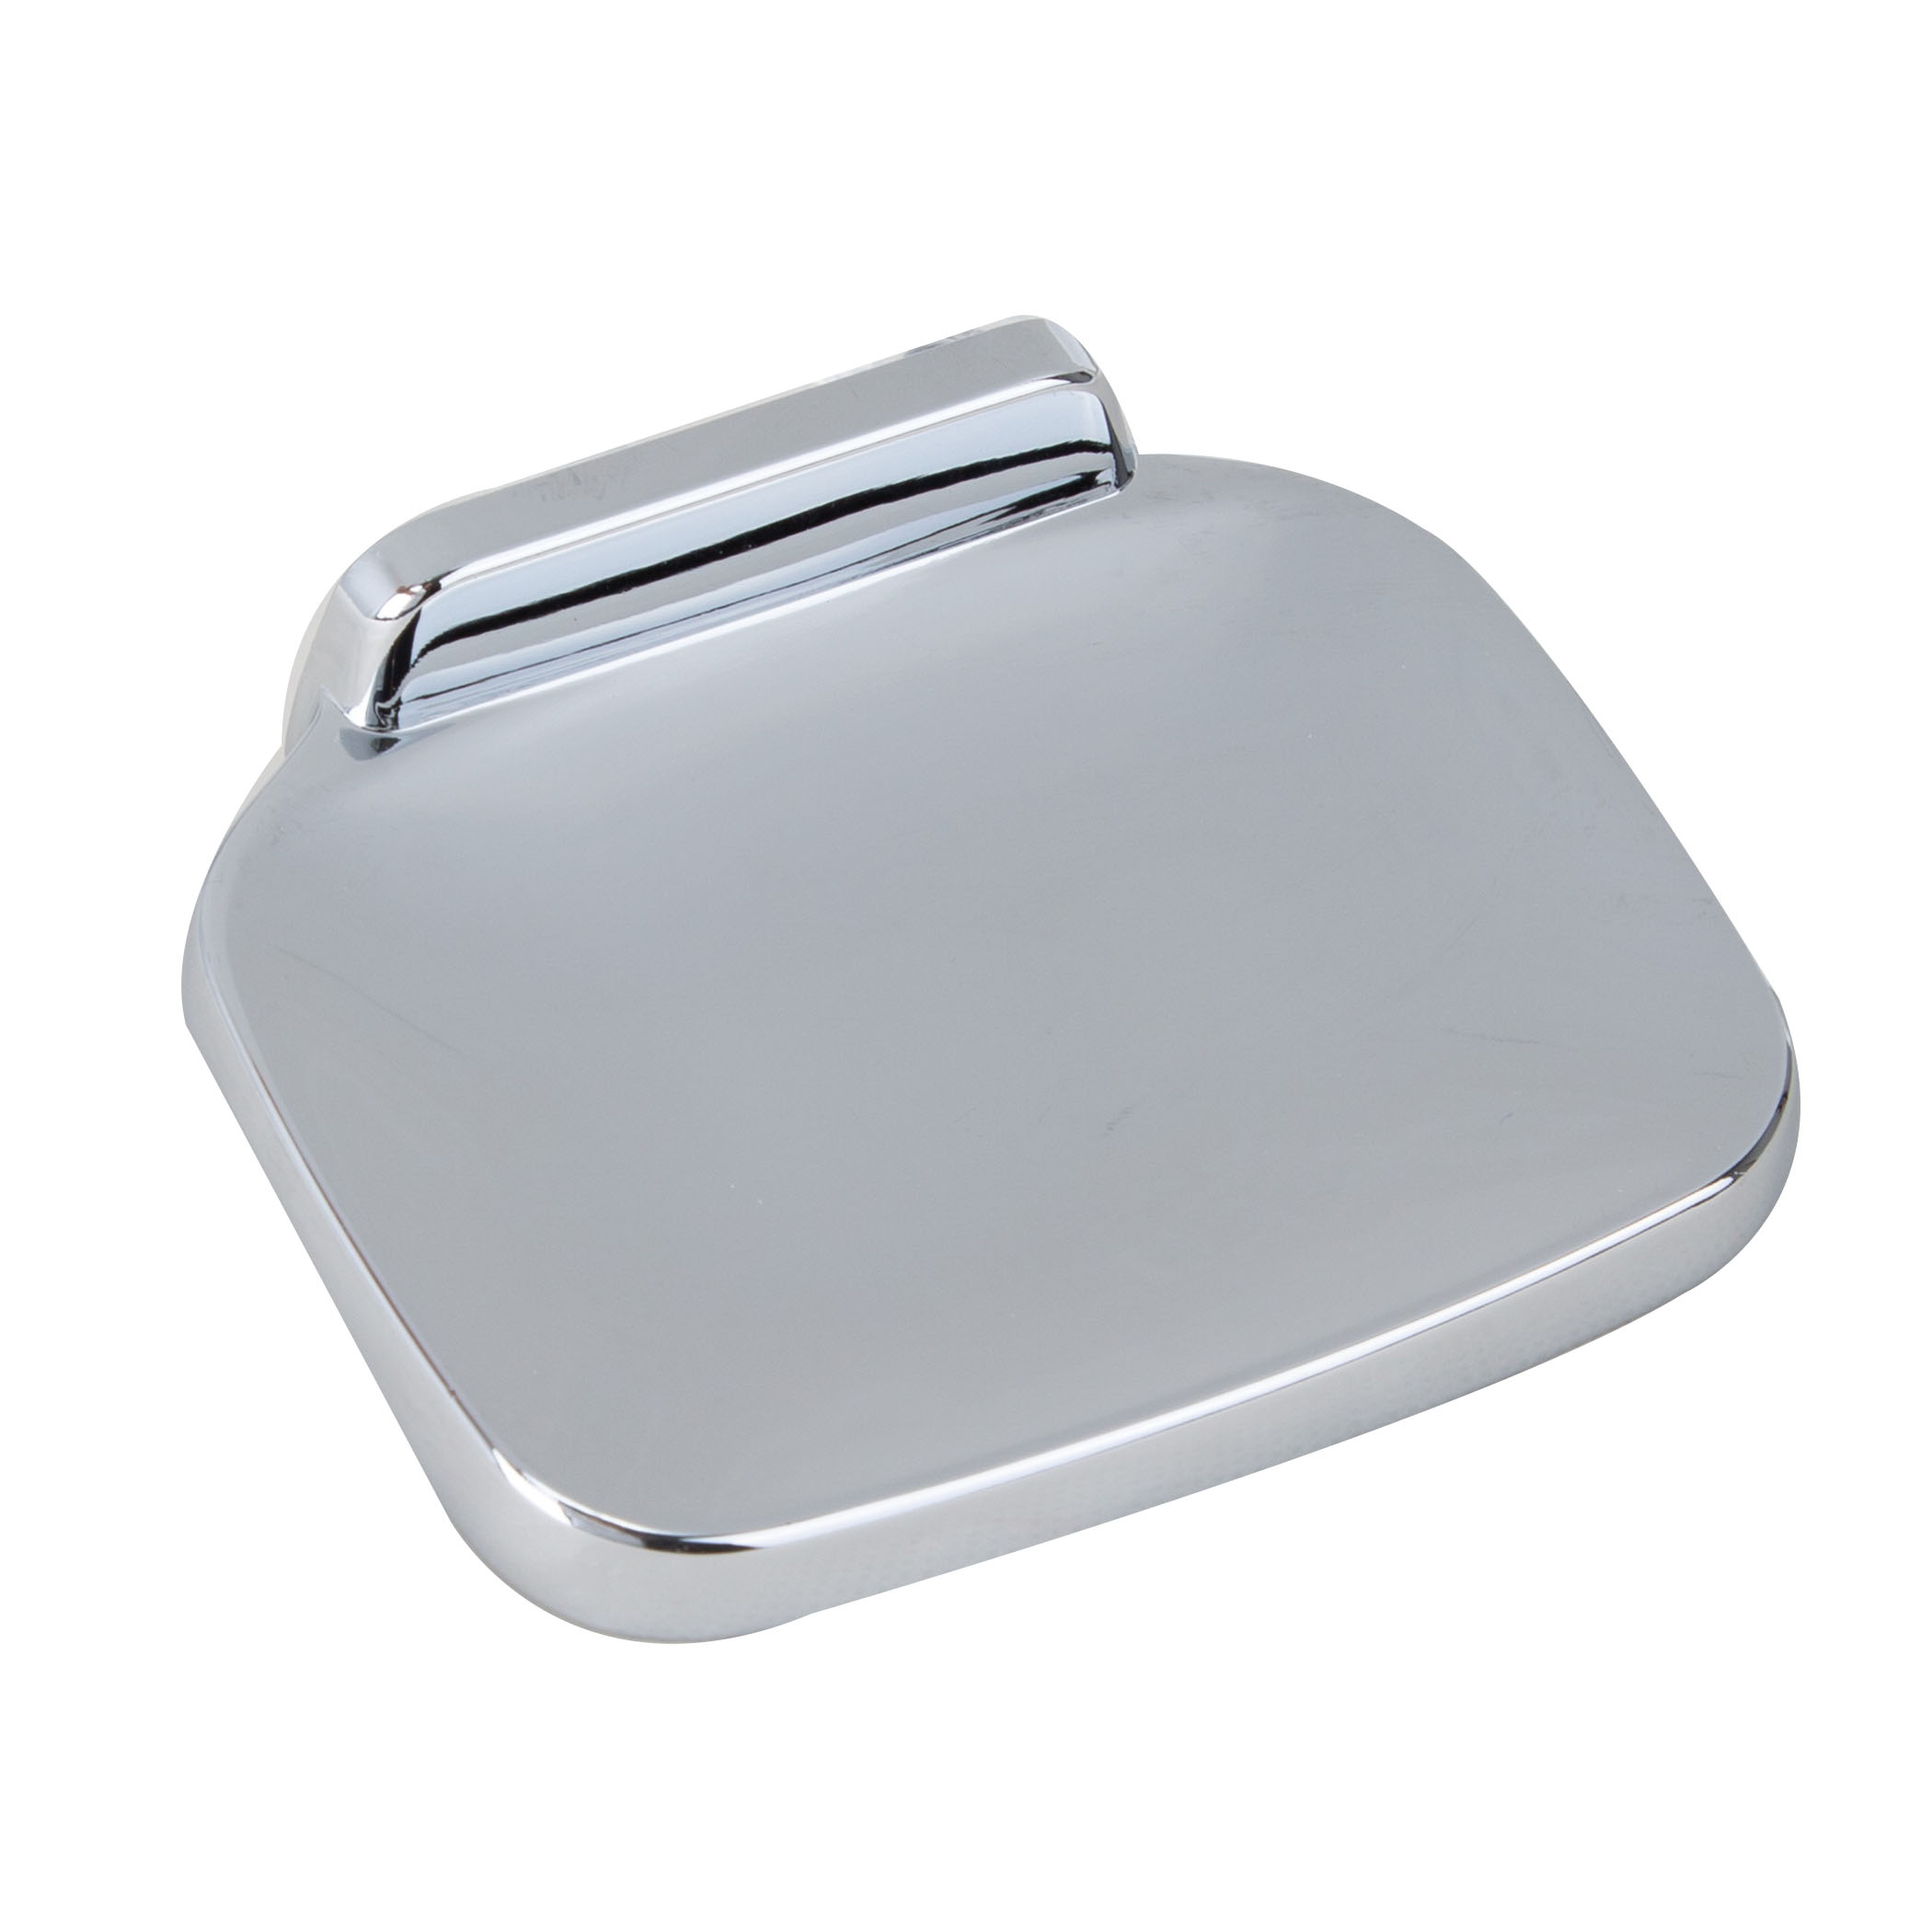 Picture of Boston Harbor CSC 8536-3L Soap Dish, Wall Mounting, Zinc